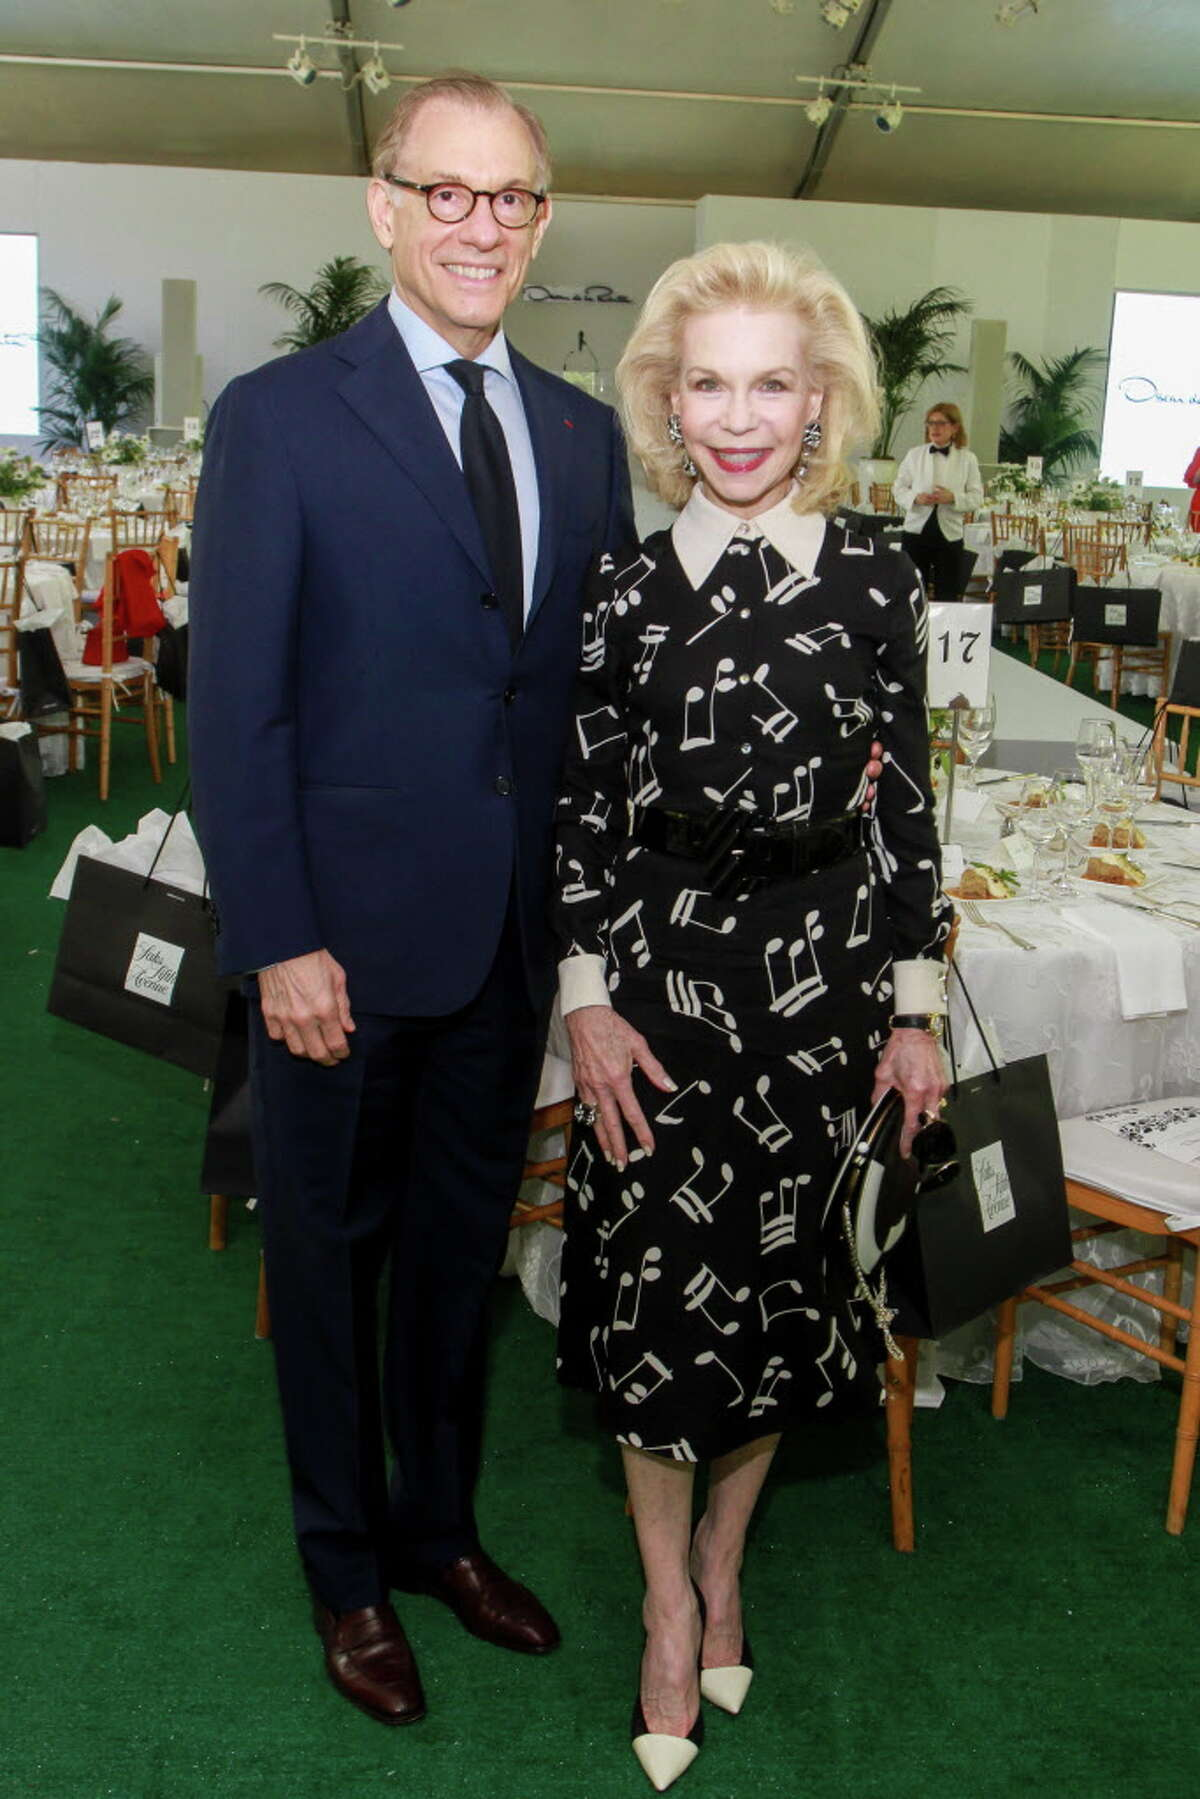 Gary Tinterow and Lynn Wyatt at the Museum of Fine Arts Bayou Bend Fashion Show and Luncheon. (For the Chronicle/Gary Fountain, March 31, 2017)